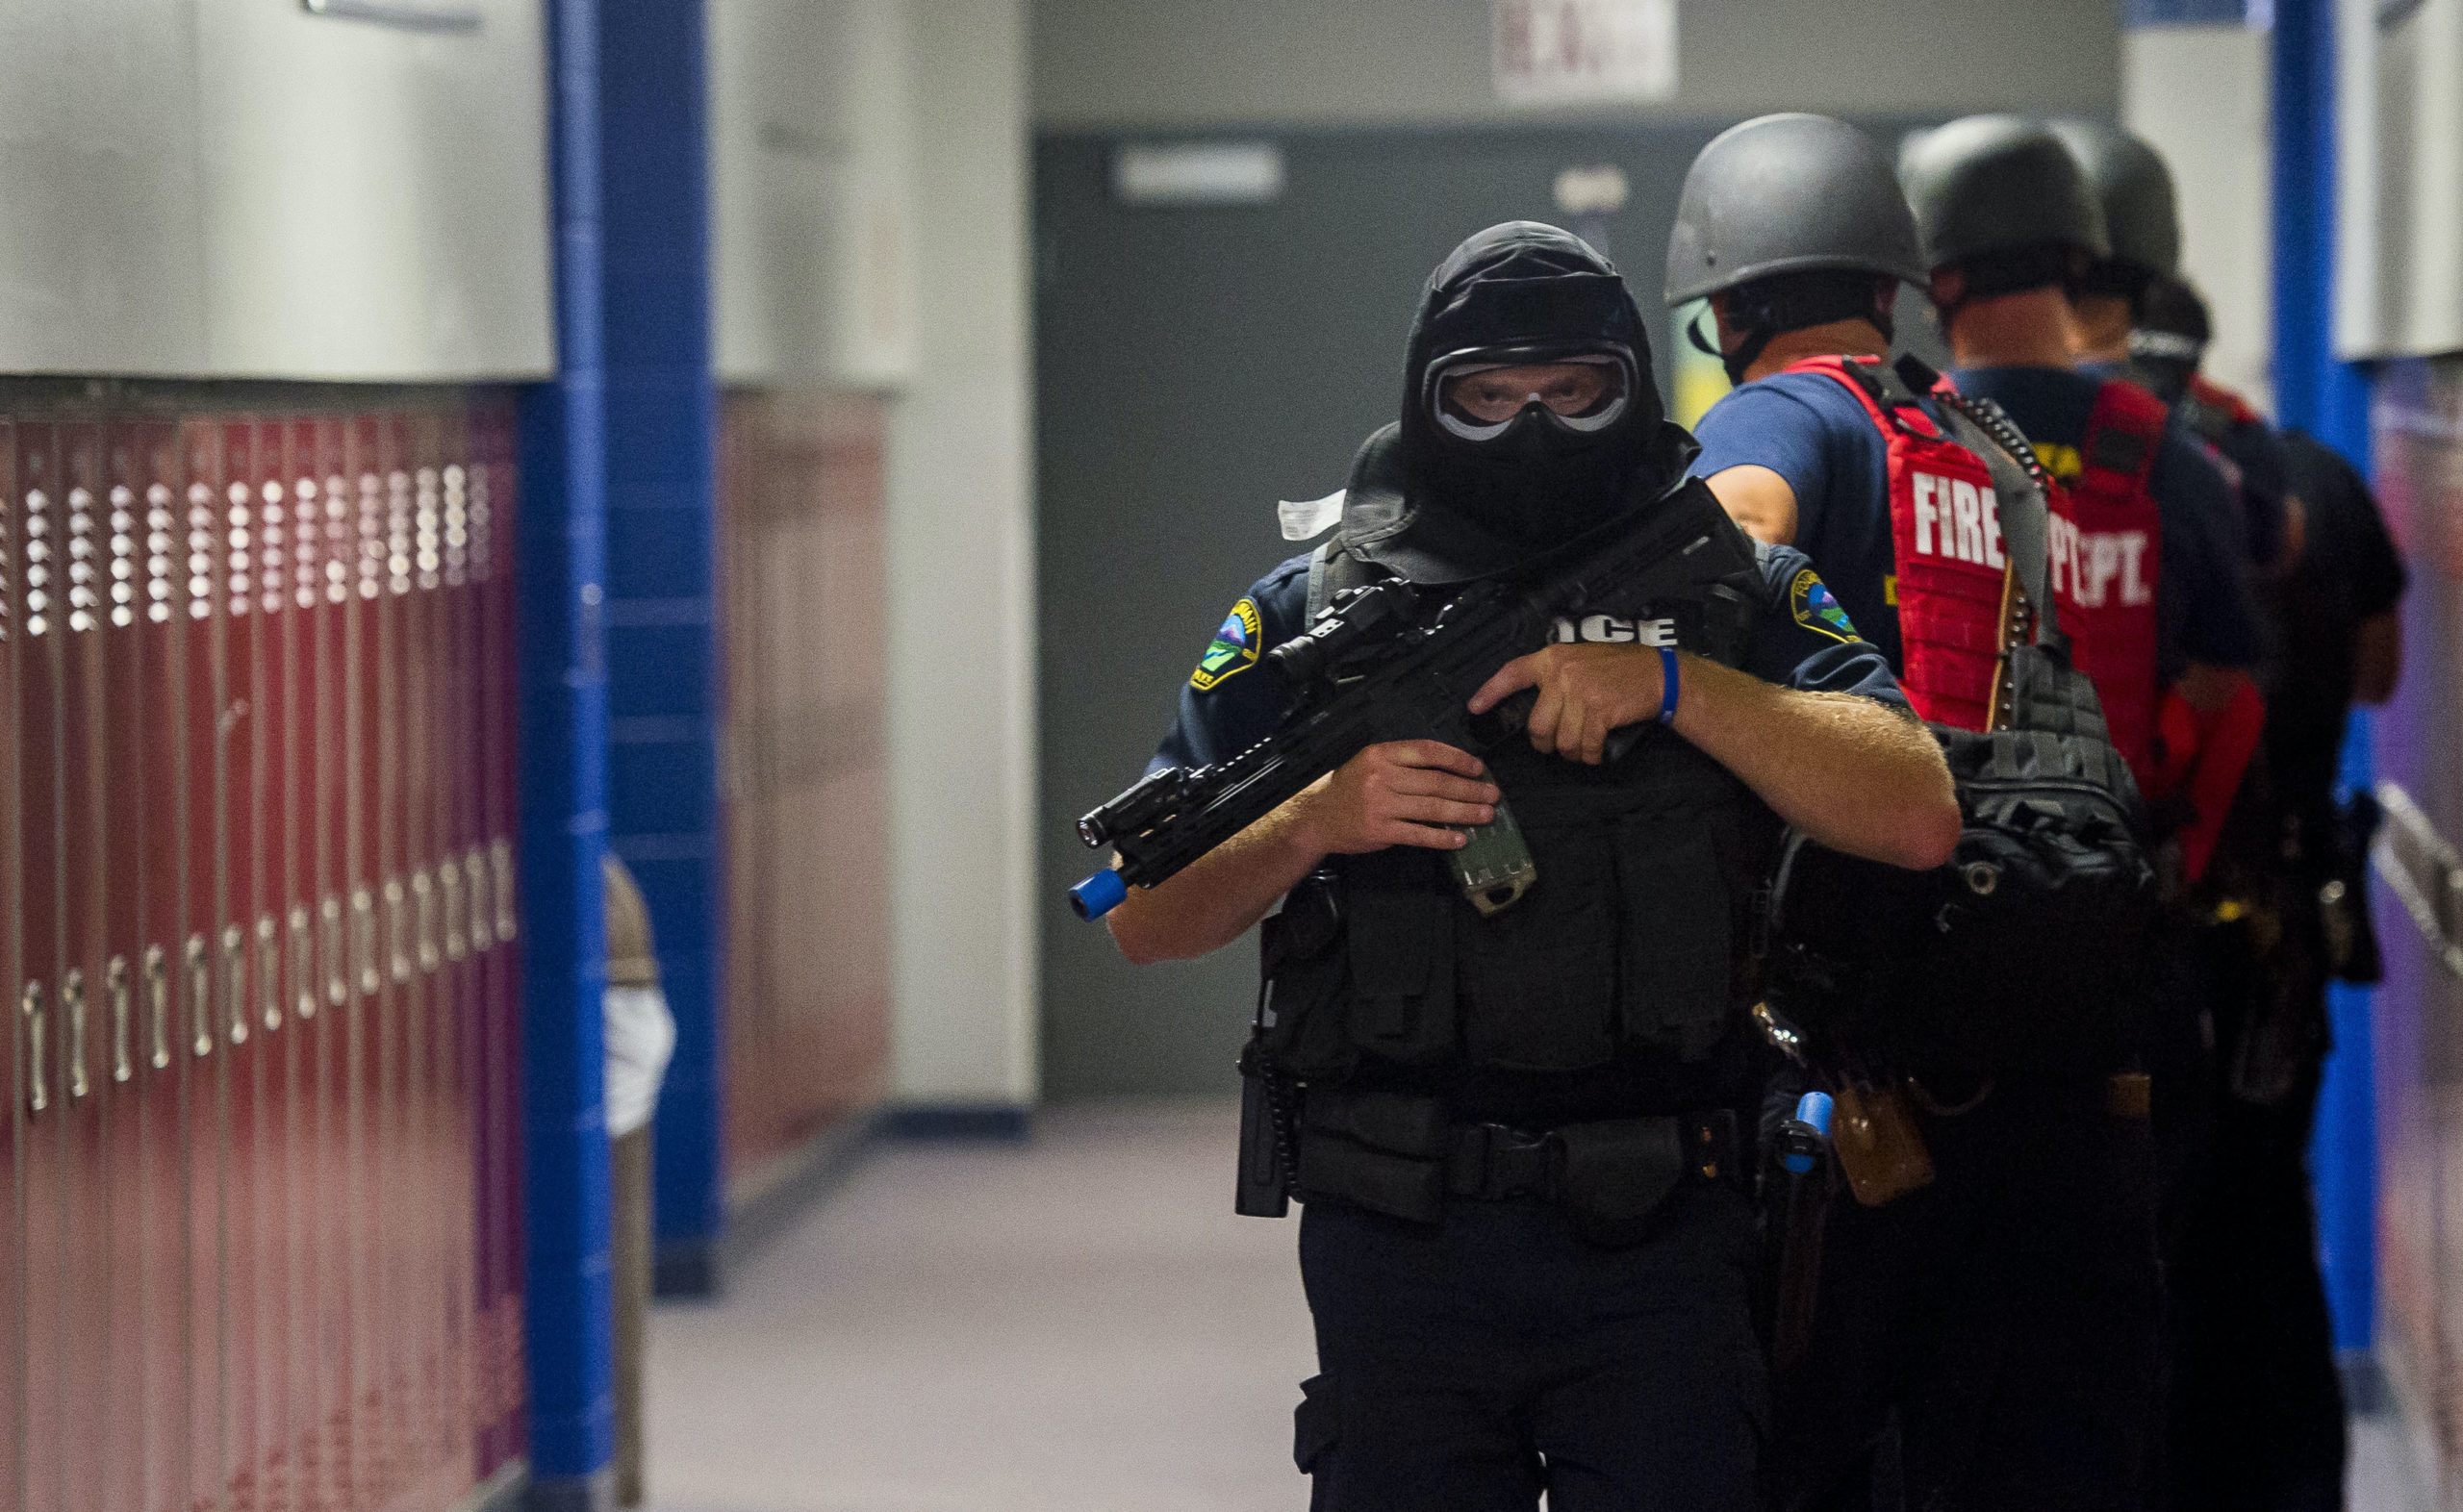 active shooter drills in schools